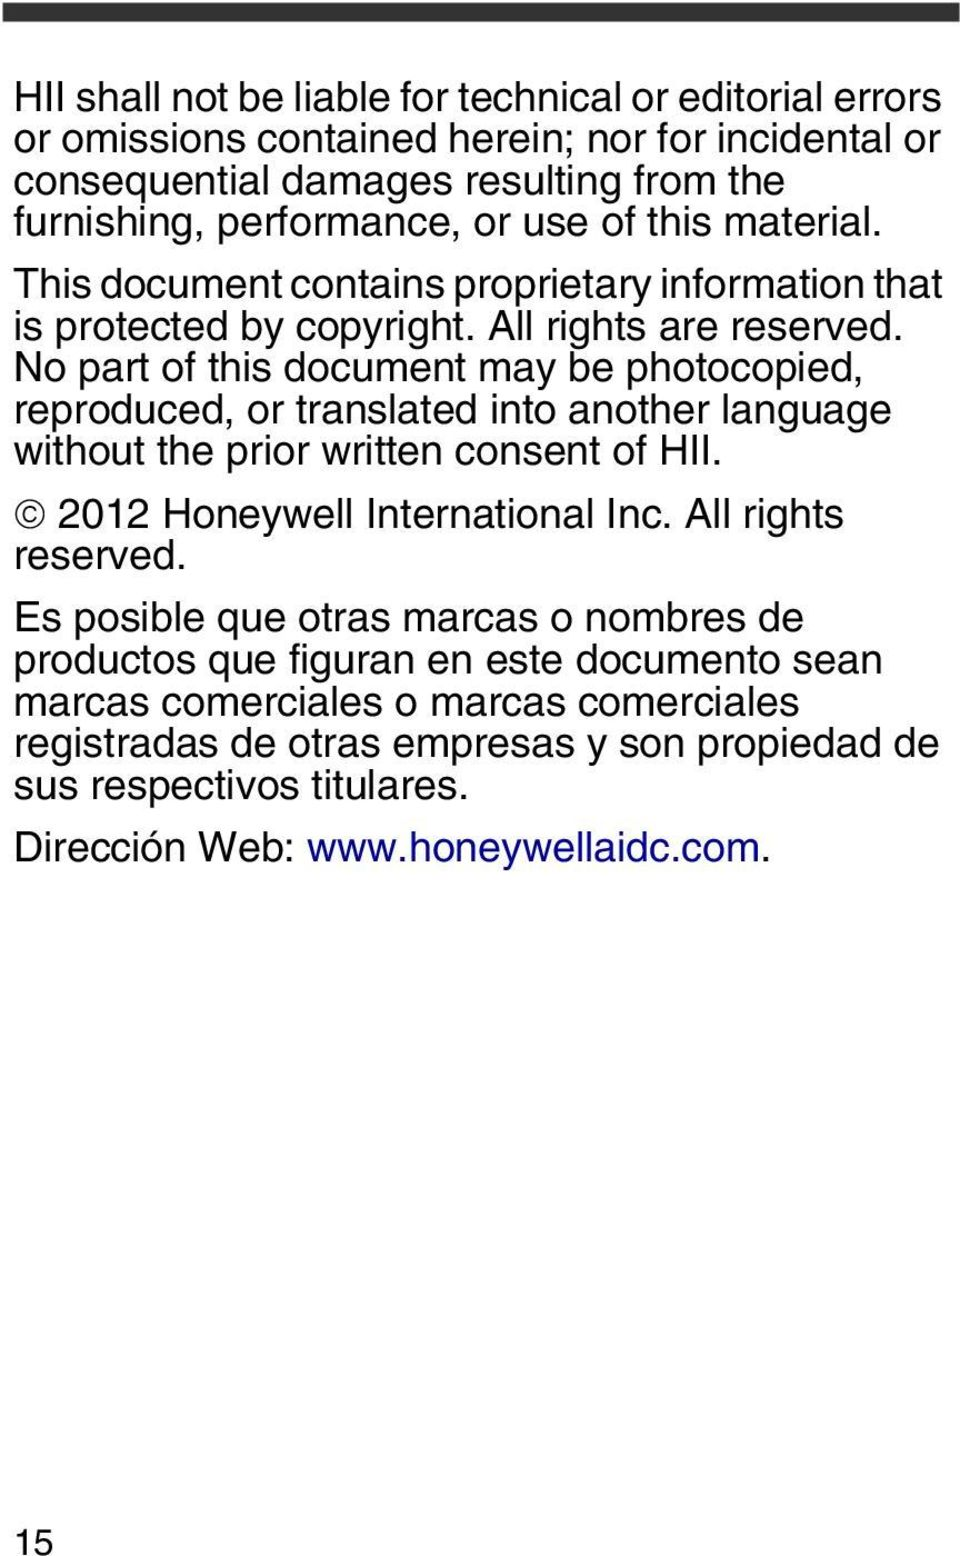 No part of this document may be photocopied, reproduced, or translated into another language without the prior written consent of HII. 2012 Honeywell International Inc.